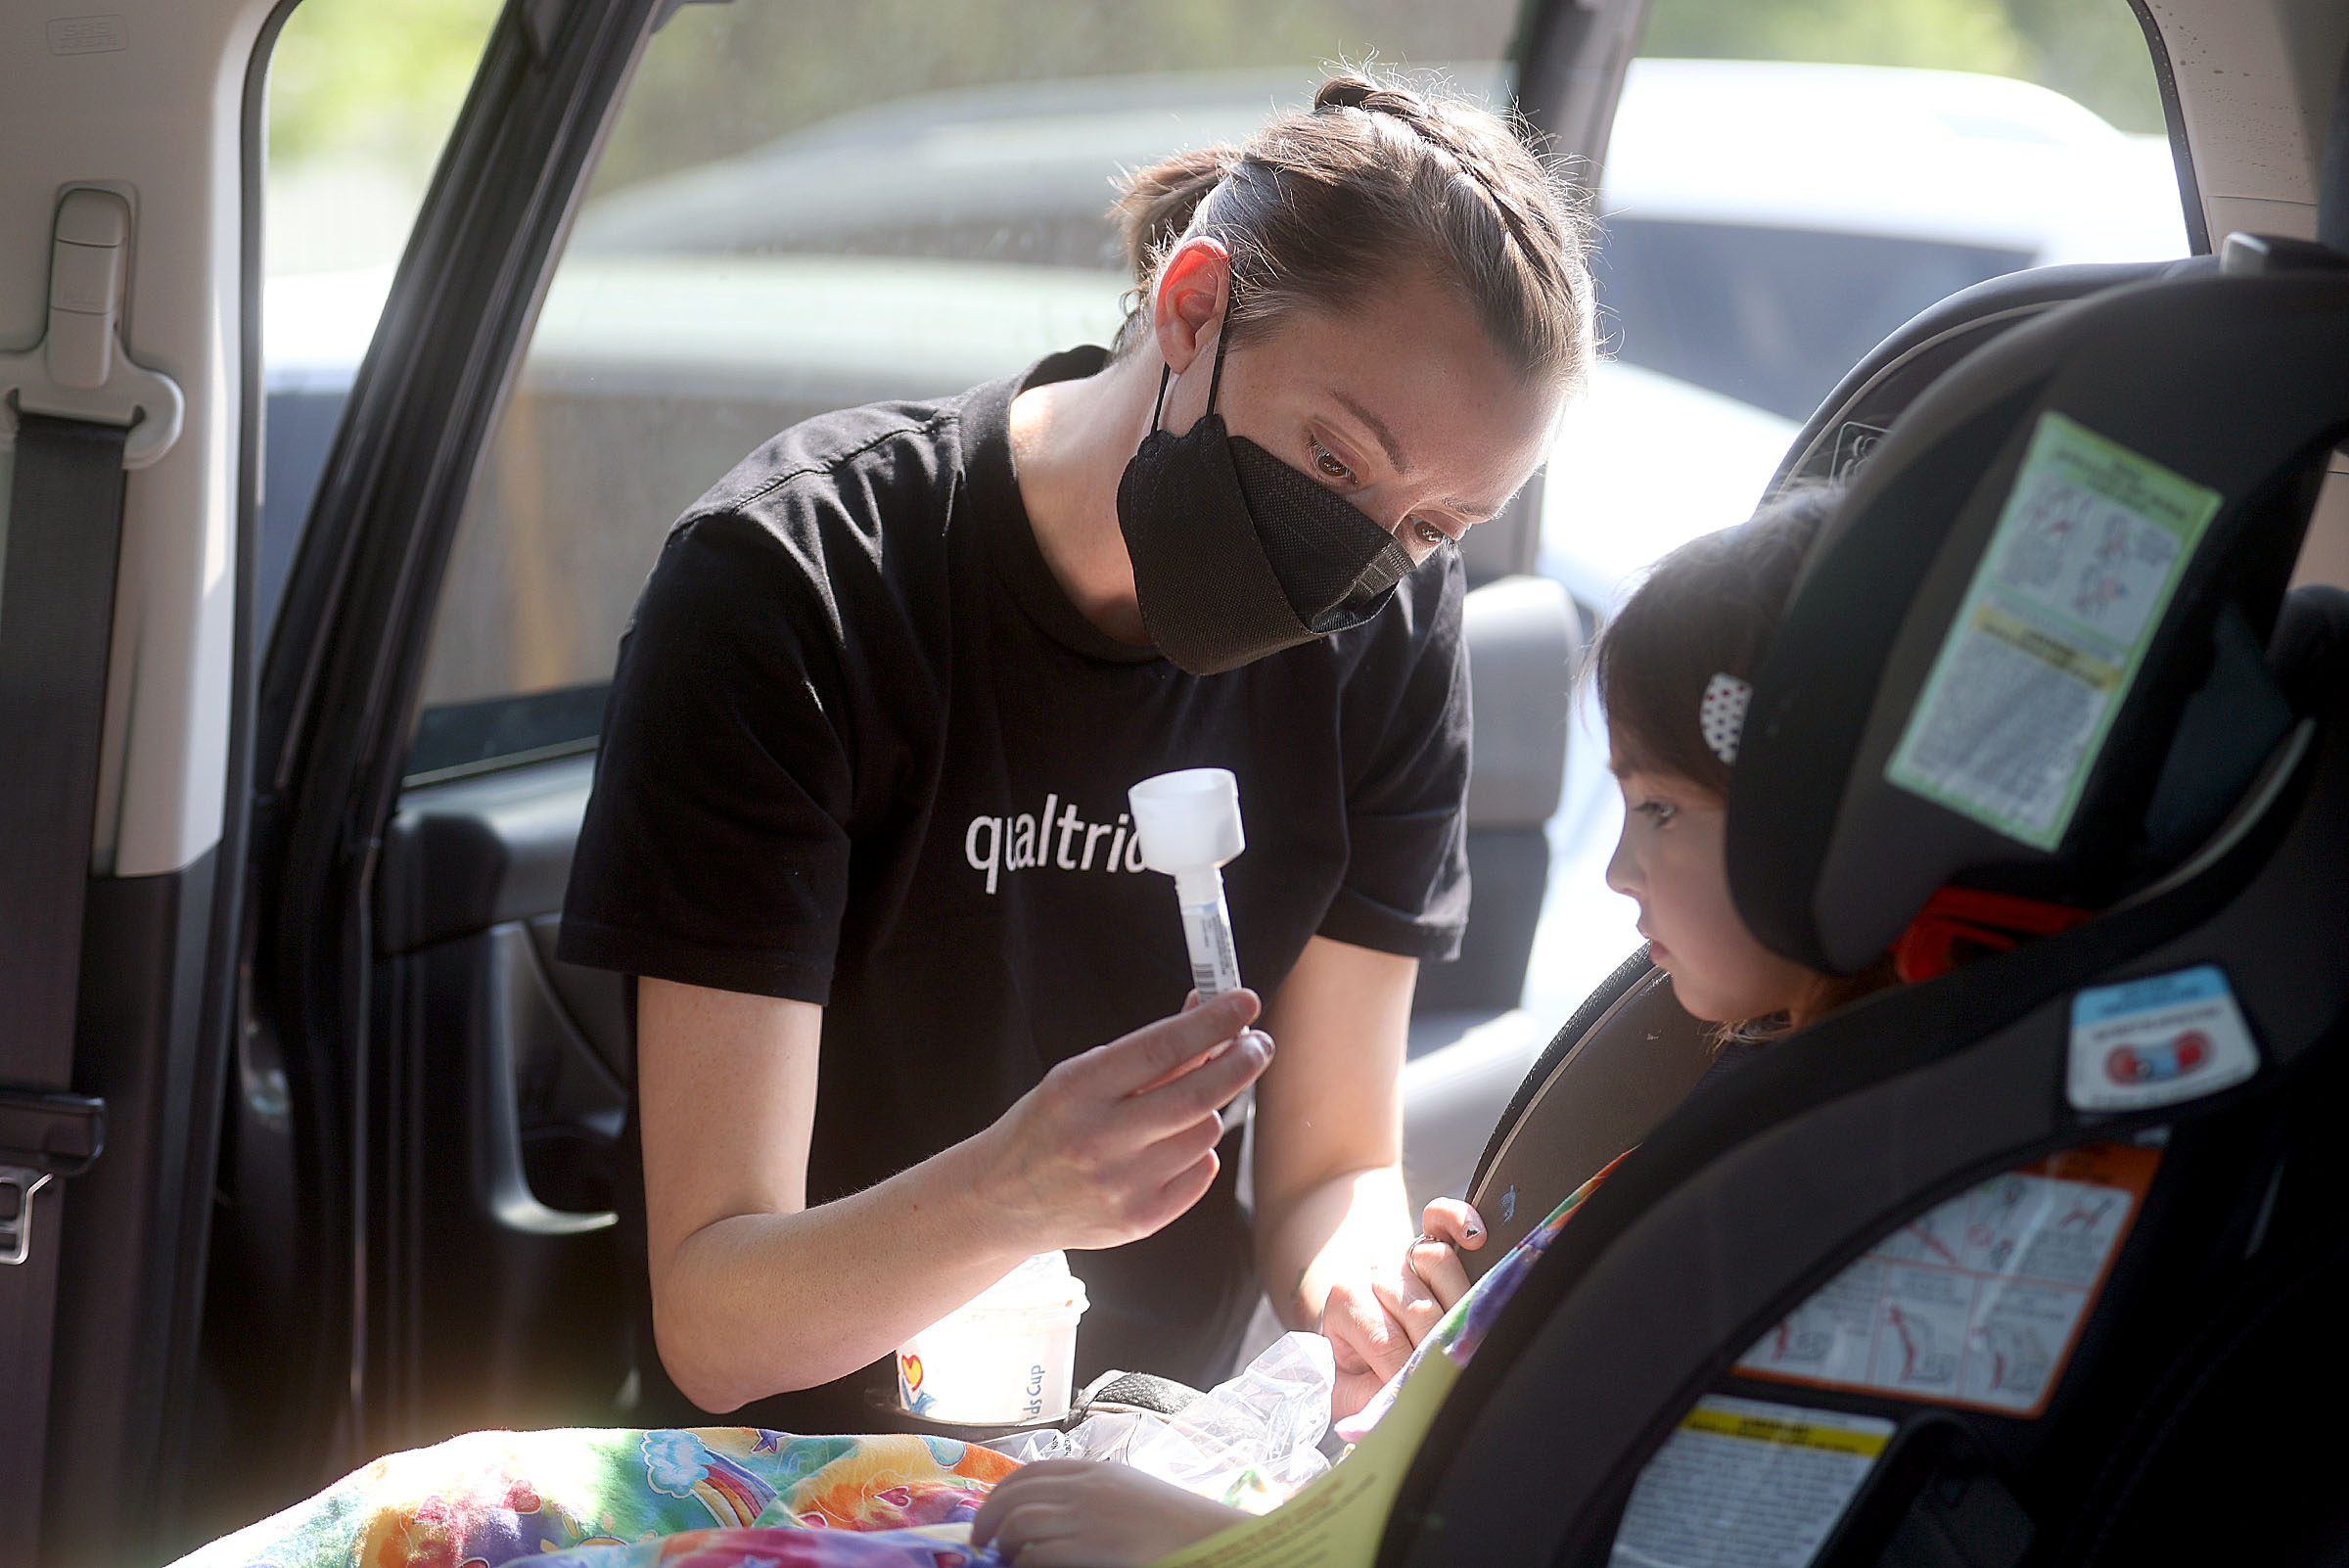 Catherine Jeppsen helps her daughter as she attempts to collect saliva for a COVID-19 test.